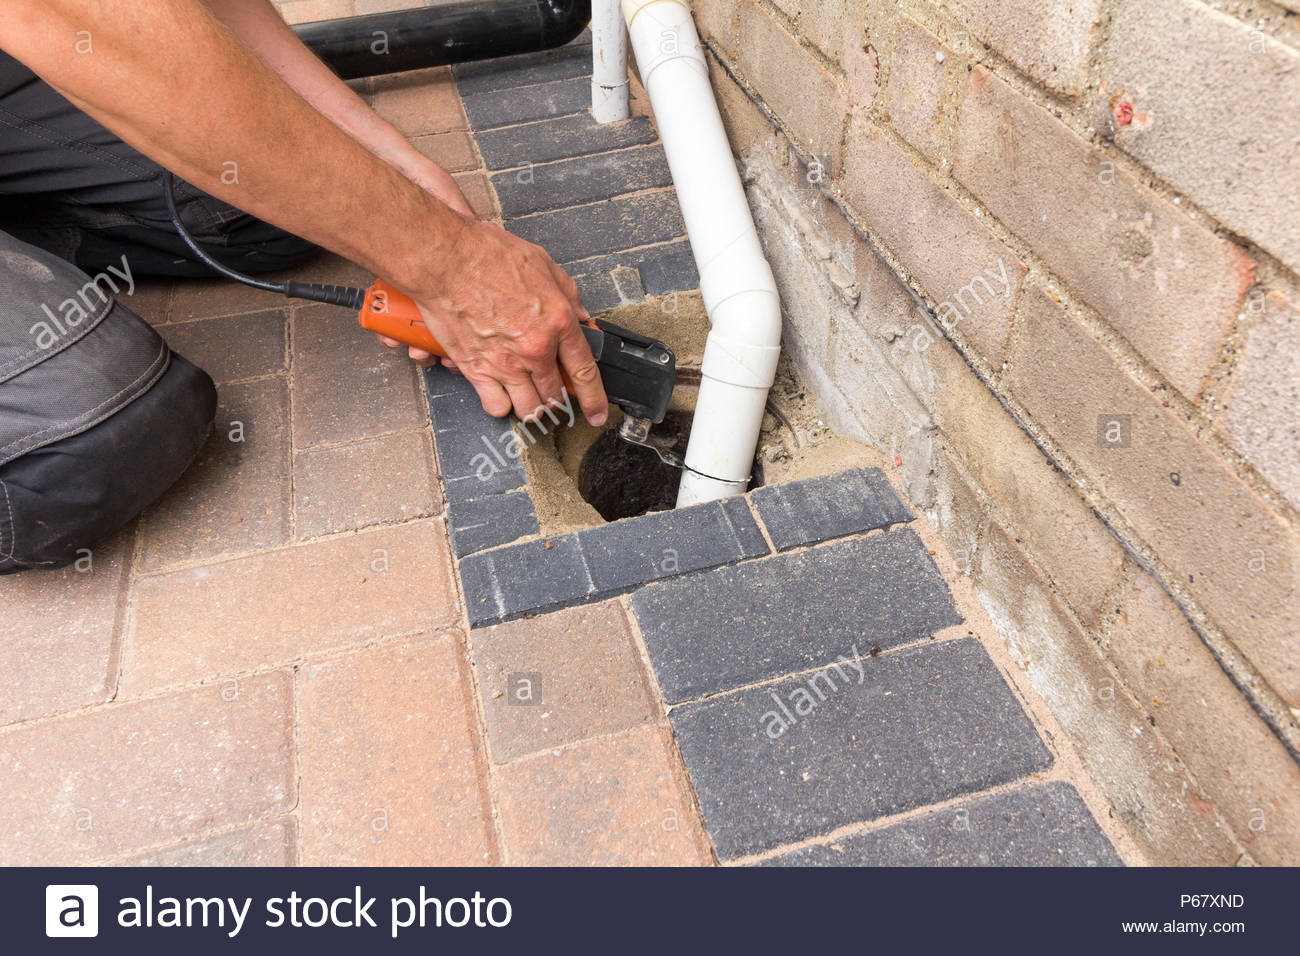 Male using an oscillating saw to fix a plastic drainpipe - Stock Image